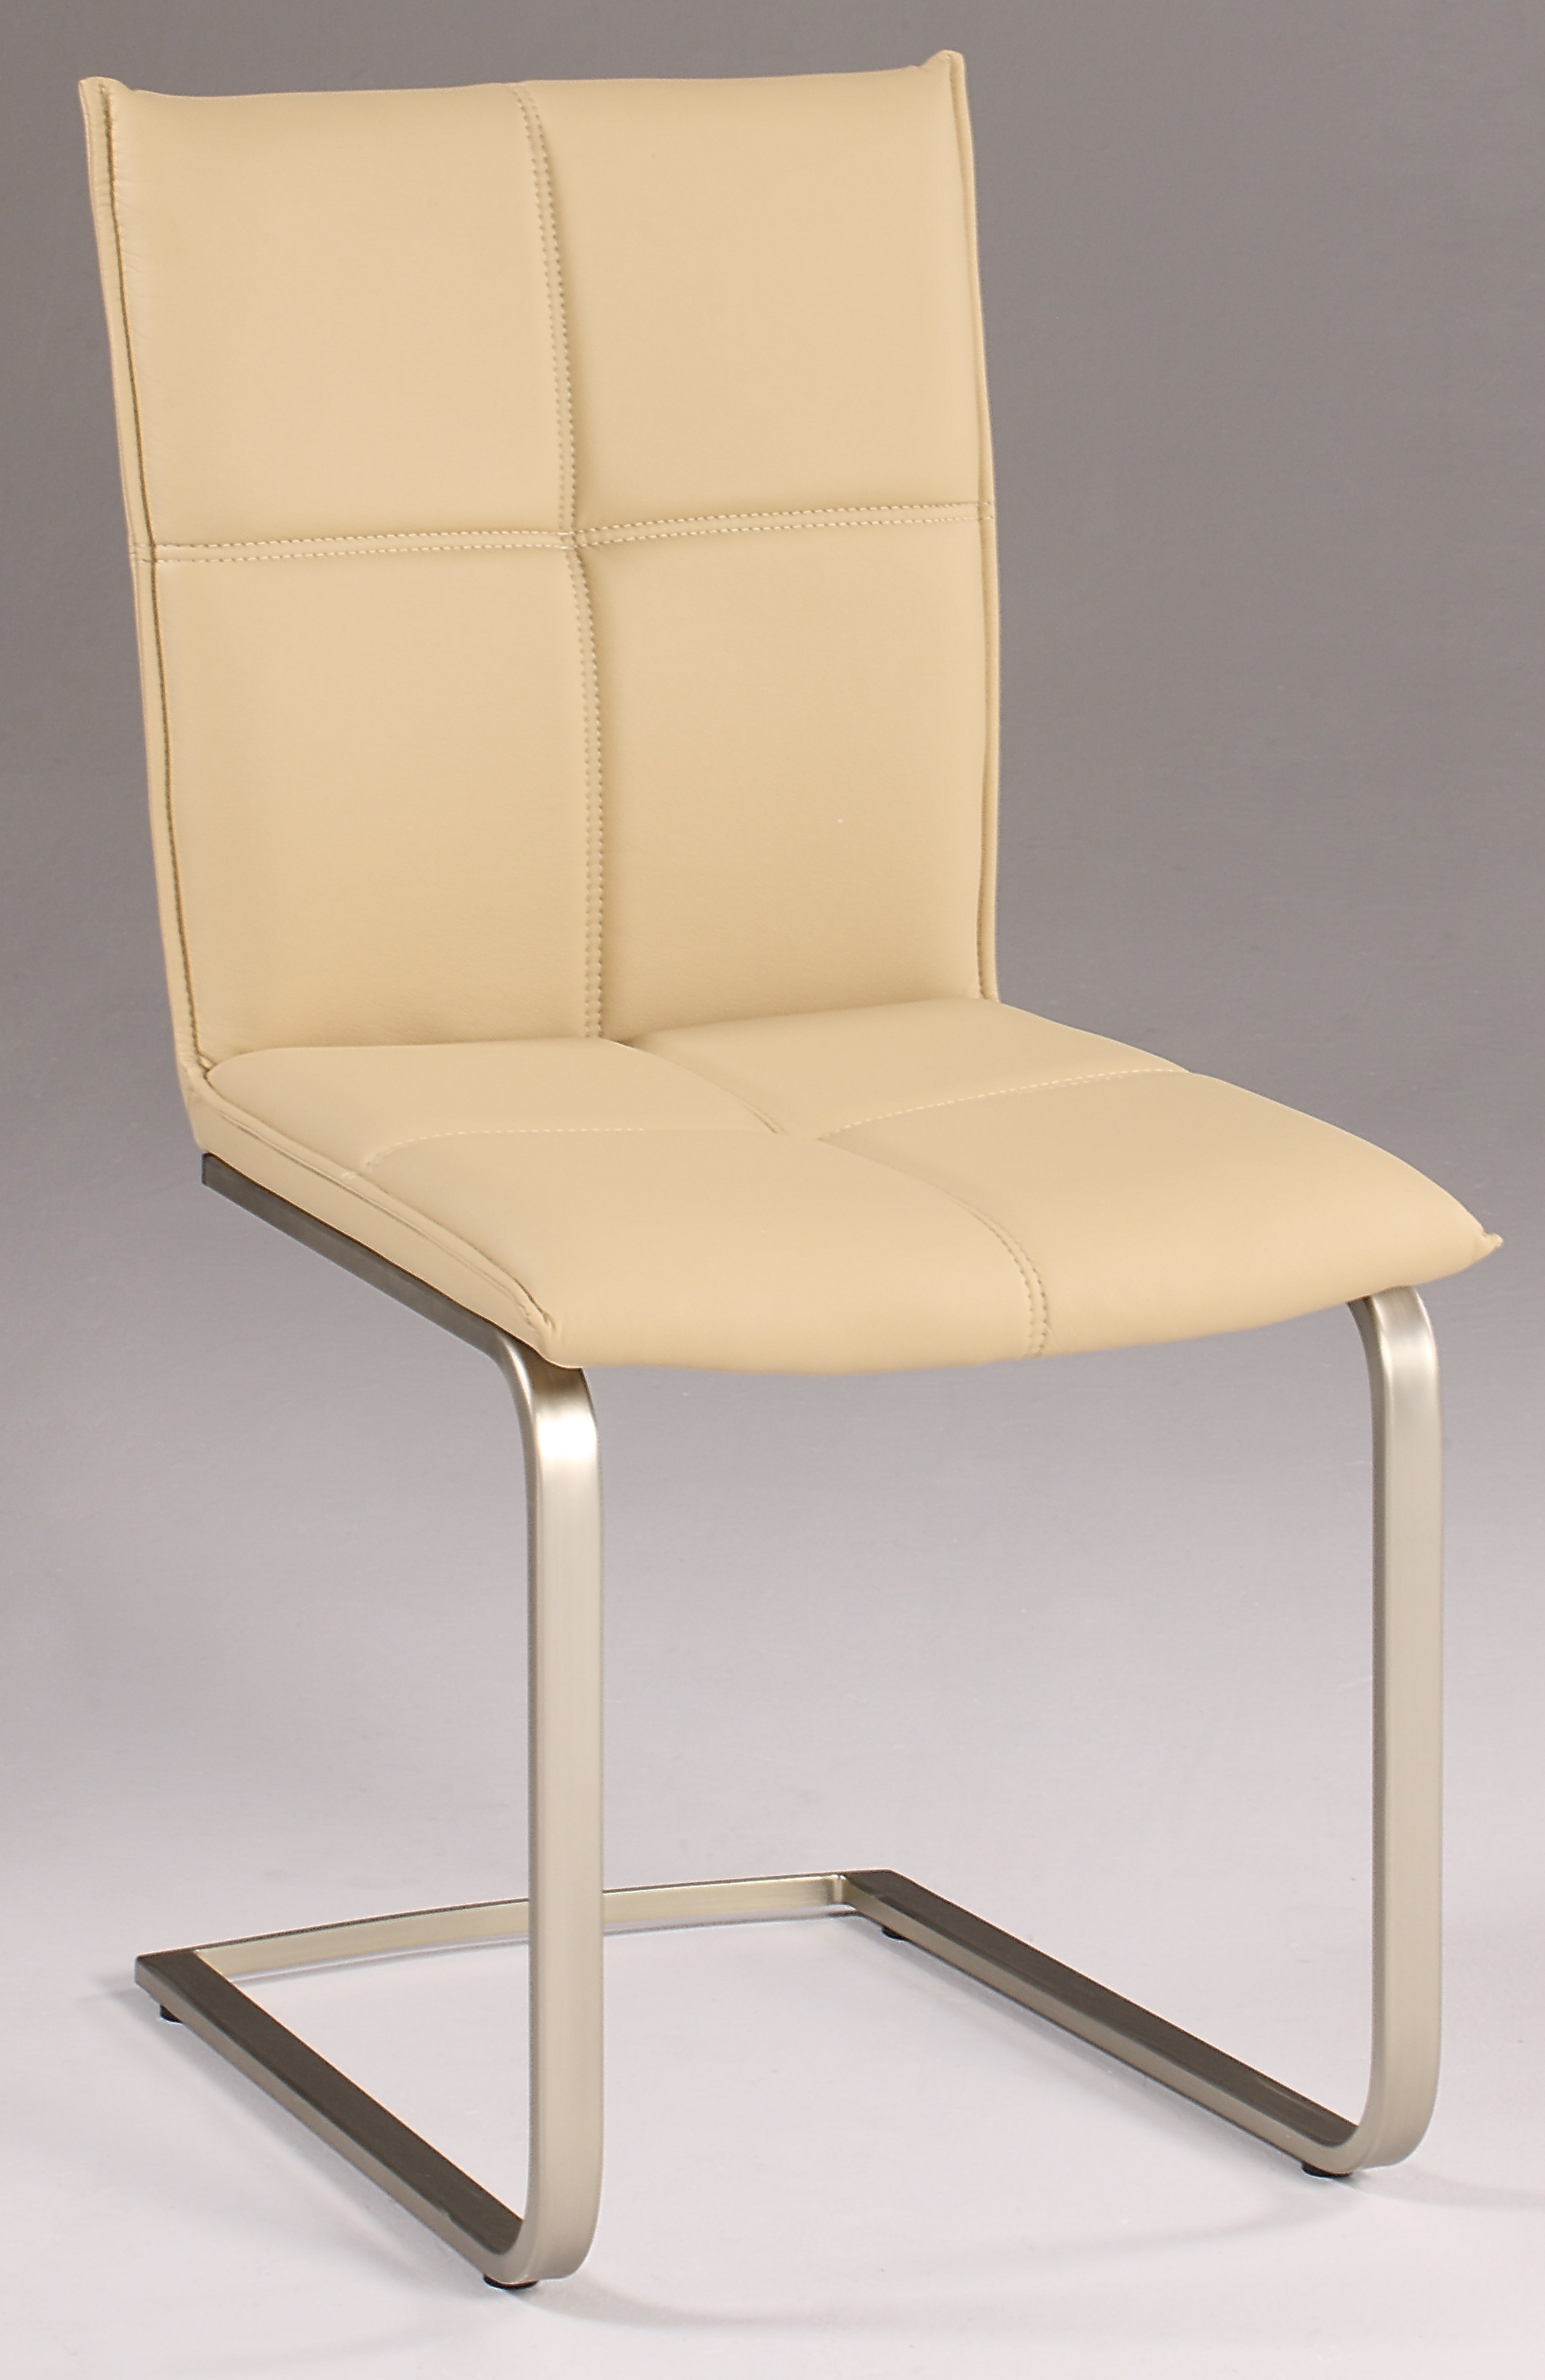 Khaki Upholstered Contemporary Side Chair With Stitched Pattern San Antonio T